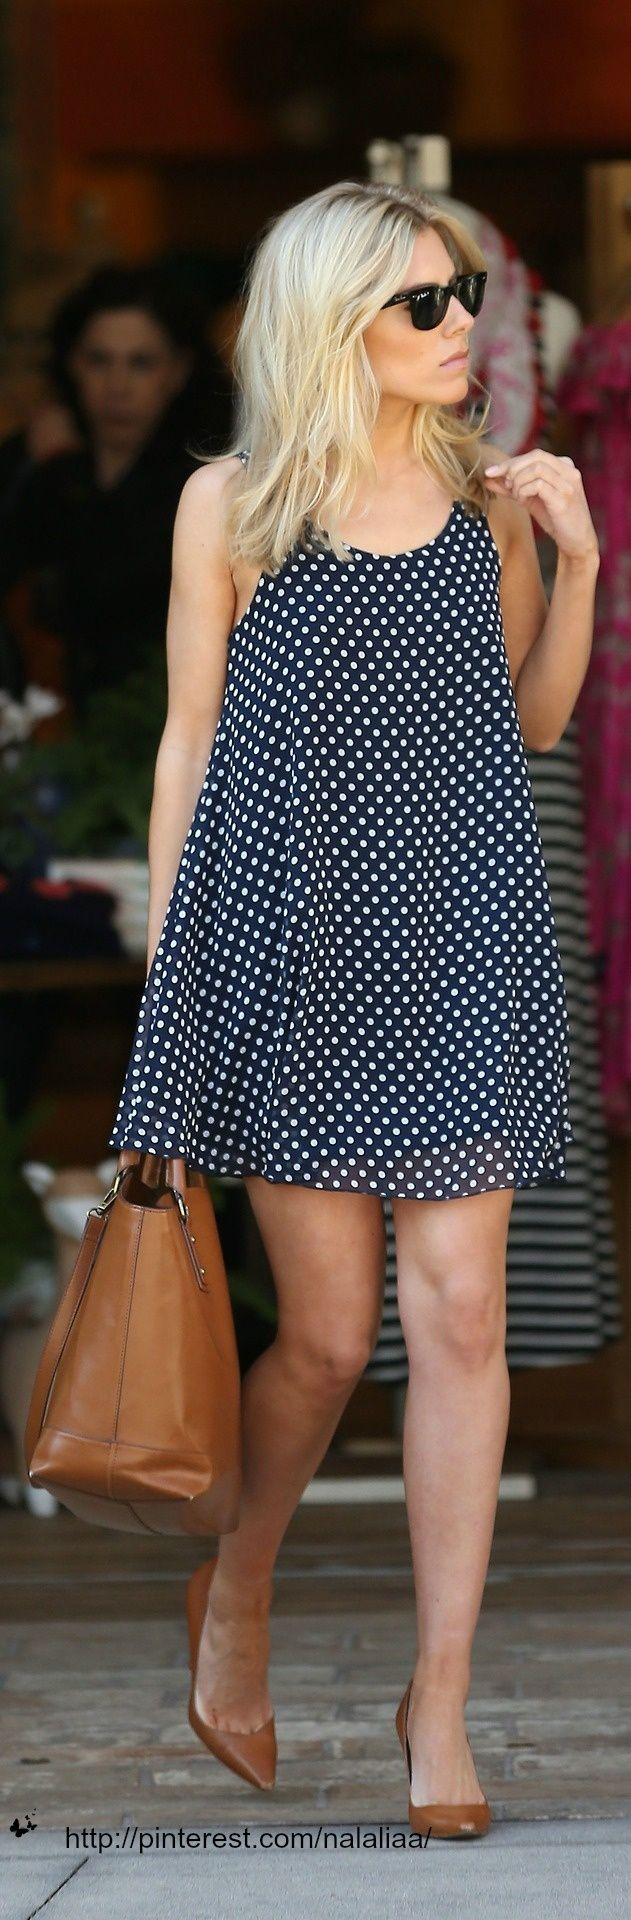 Polka Dots Mini Dress